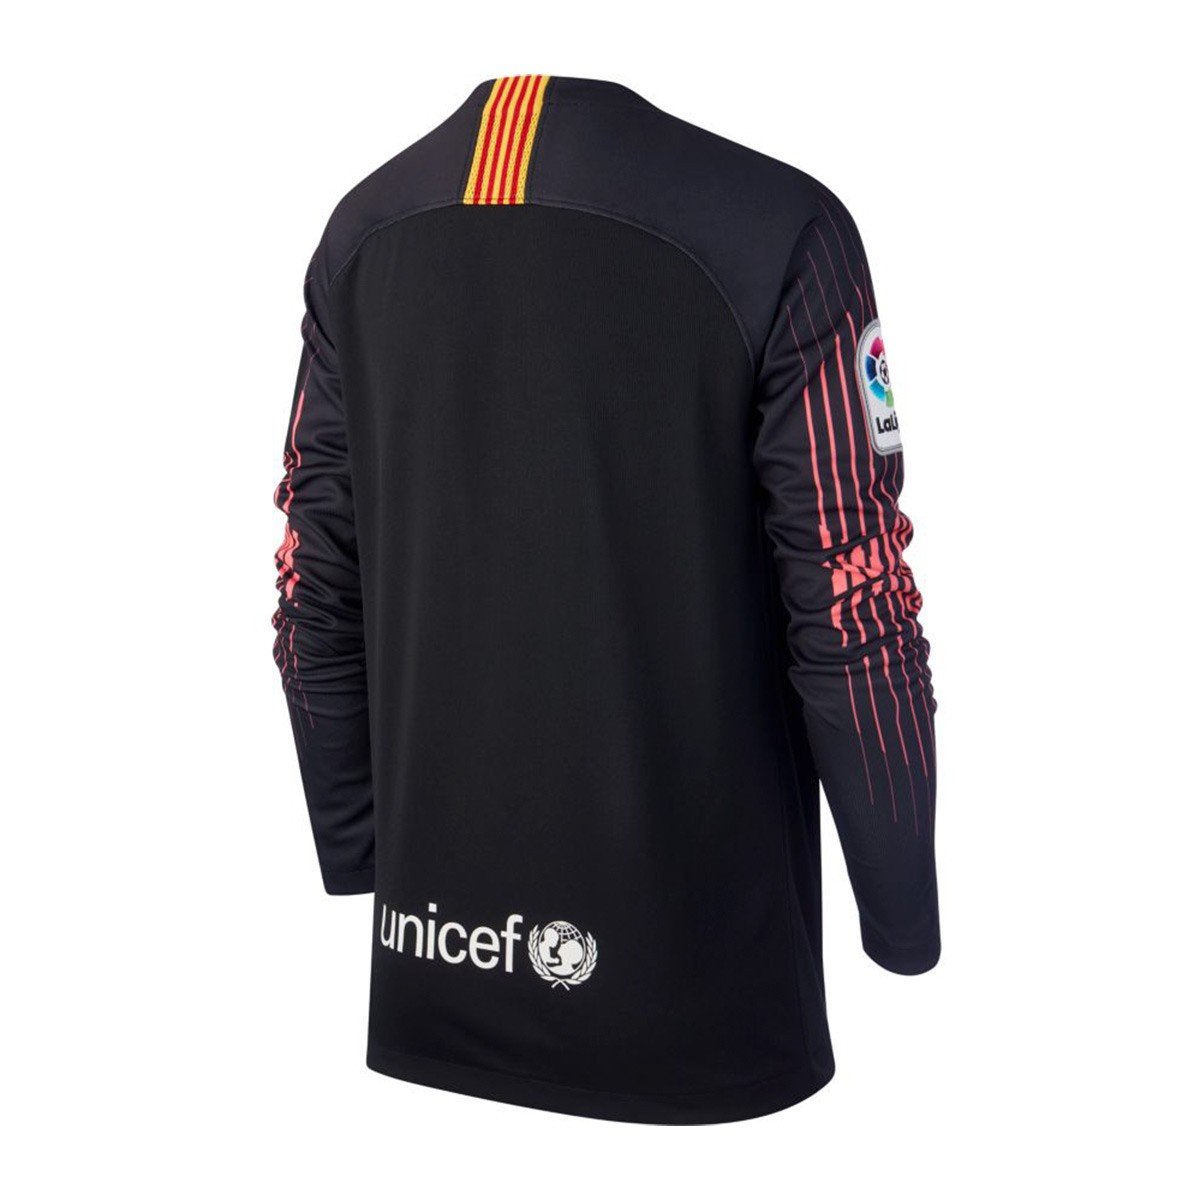 low priced 45ae3 e38d0 Jersey Nike Kids Goalkeeper FC Barcelona Stadium 2018-2019 ...